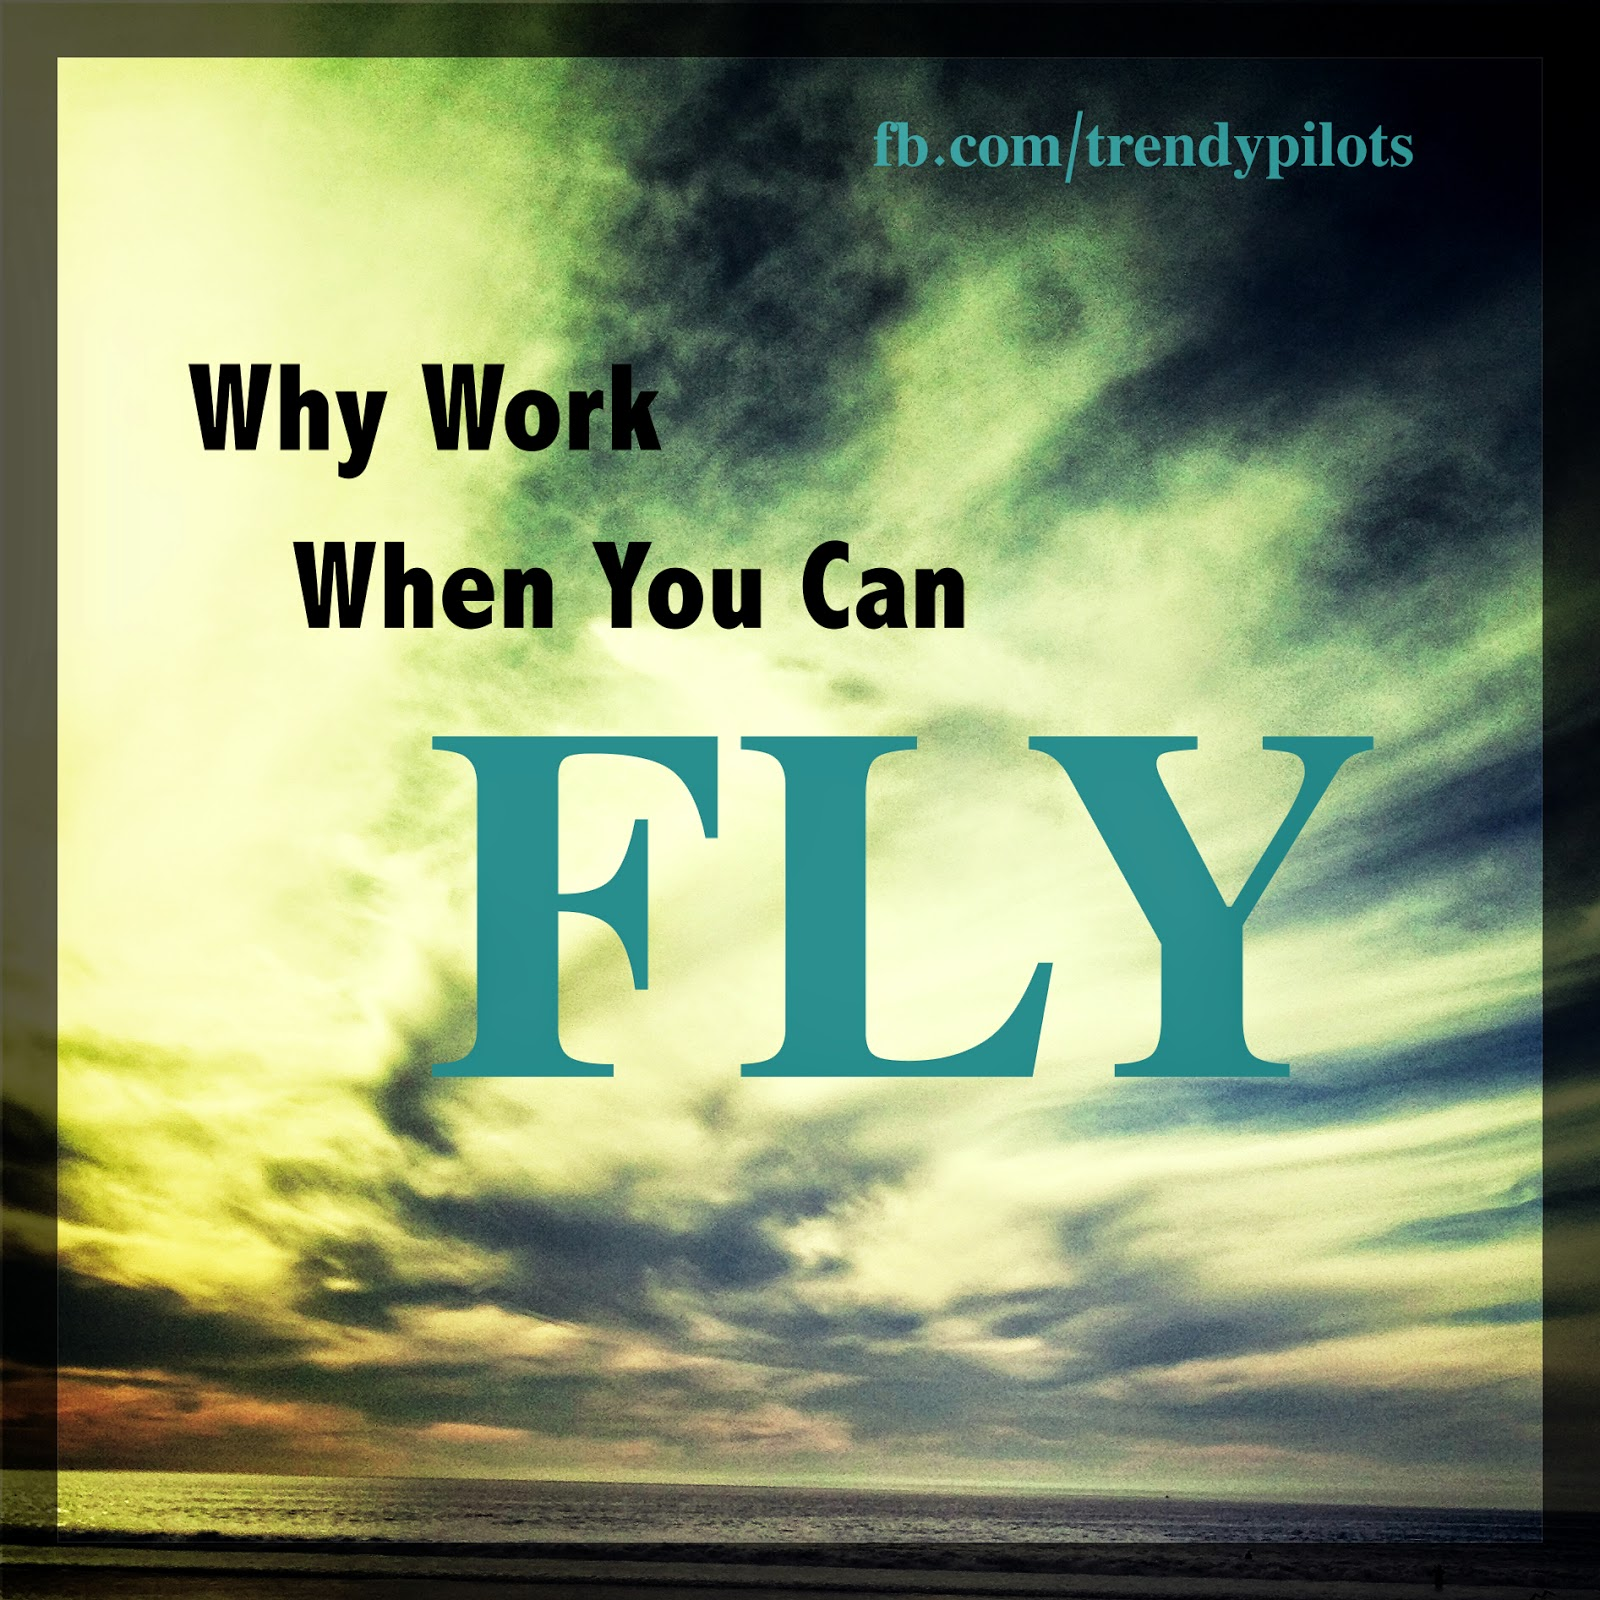 Inspirational Quotes: Trendy Pilots: Motivational Quotes/Pictures 2014